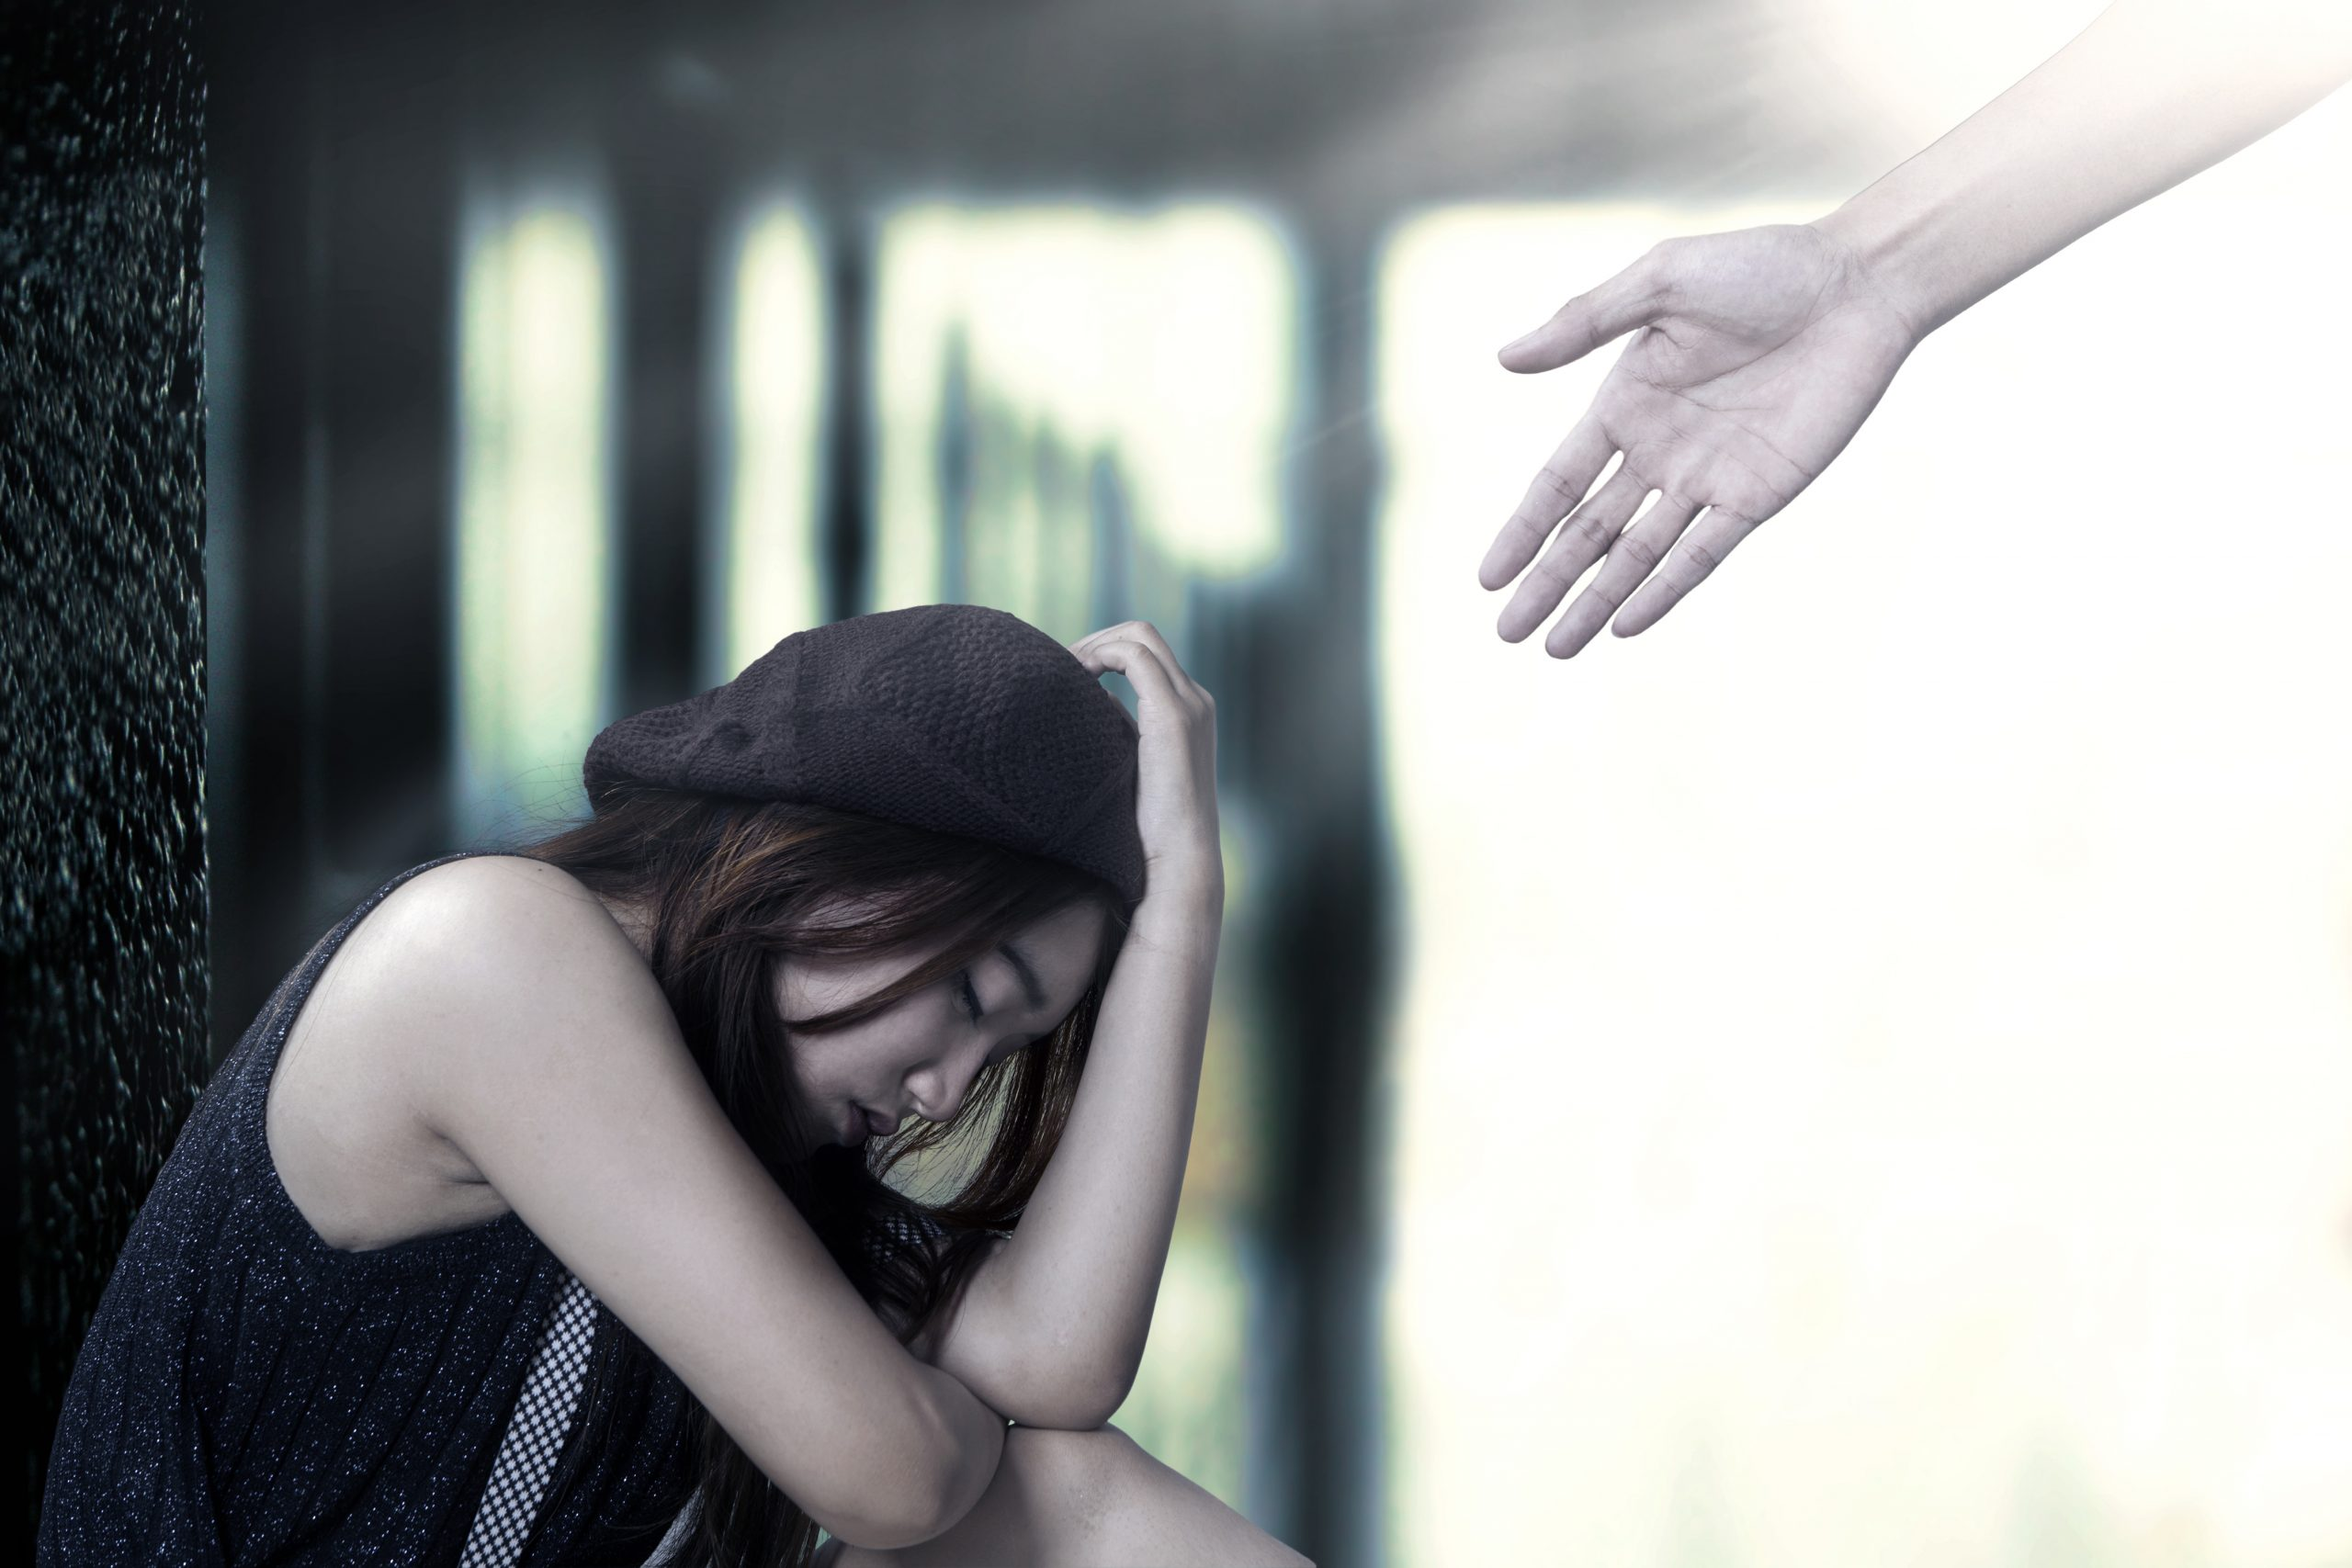 Photo of woman sitting down looking sad with someone reaching out their hand to help.